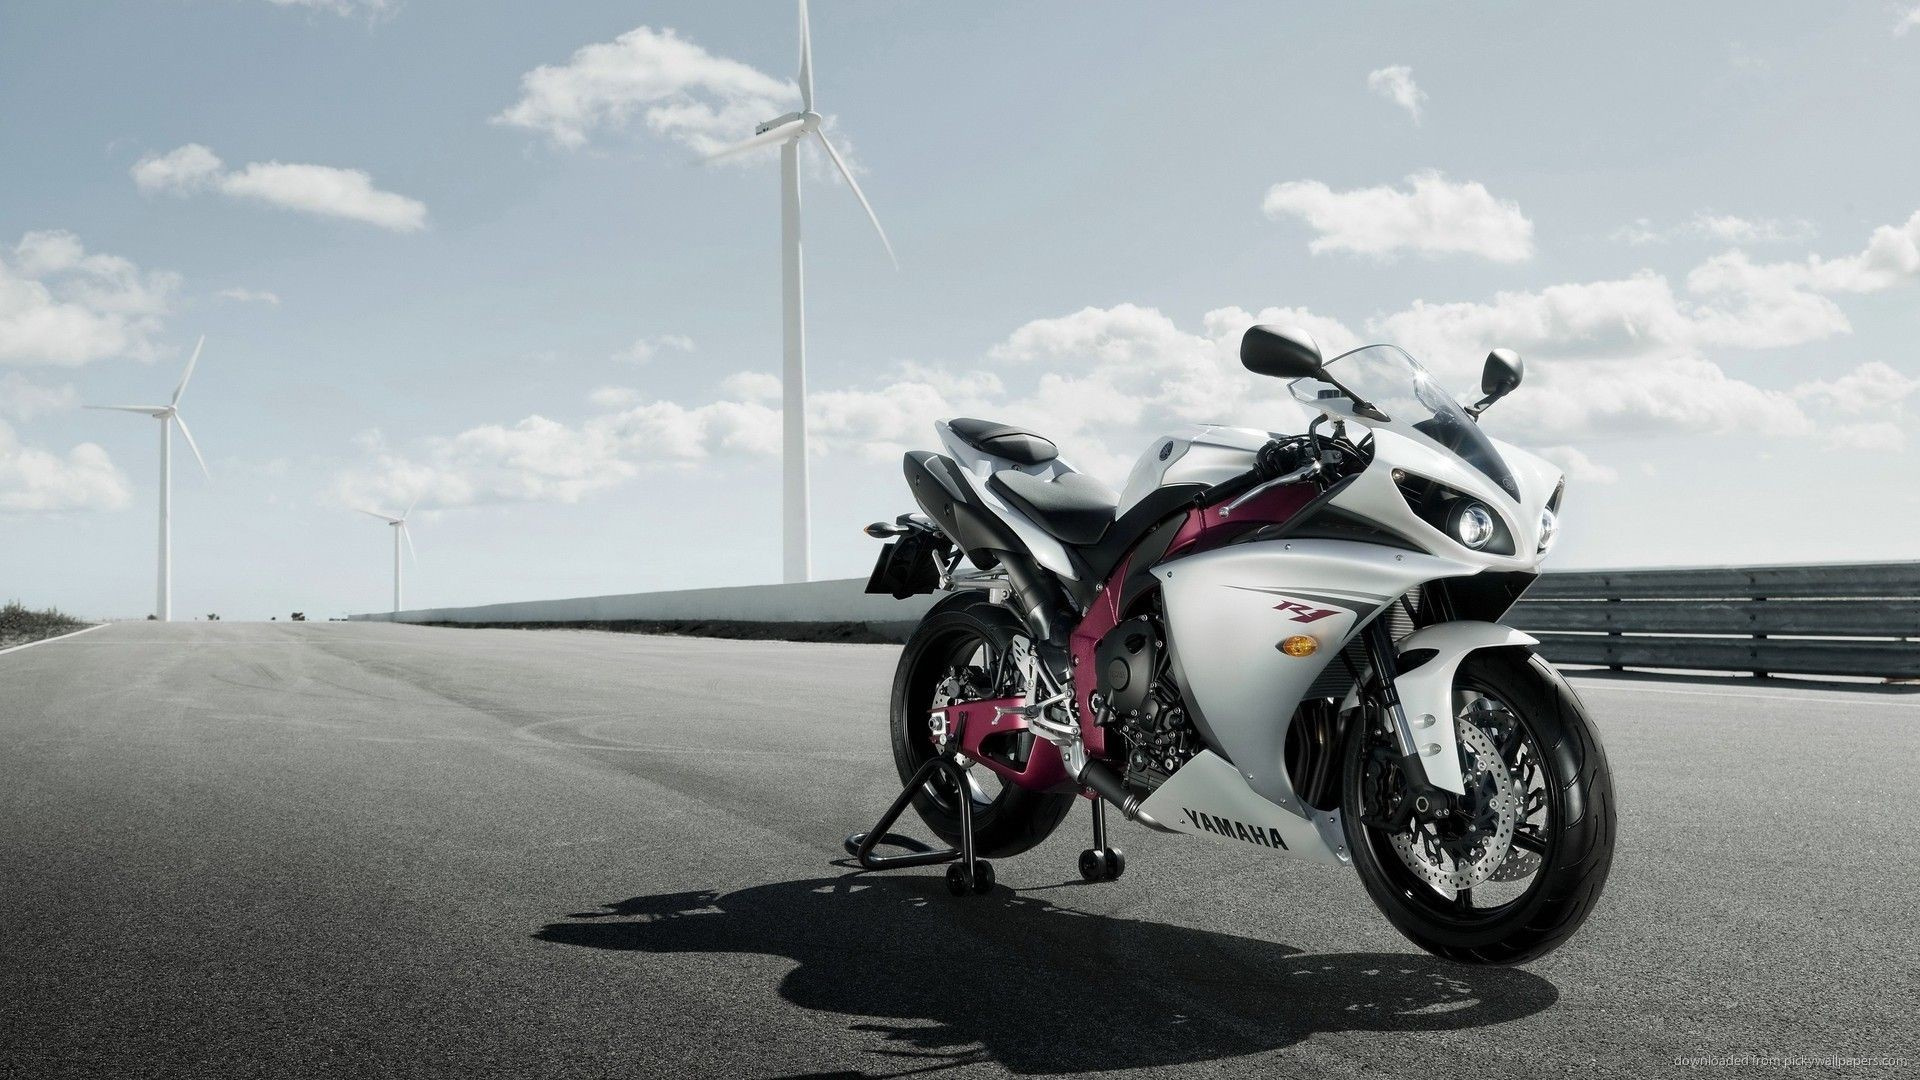 Res: 1920x1080, Yamaha R1 Wallpaper Find best latest Yamaha R1 Wallpaper for your PC  desktop background & mobile phones.